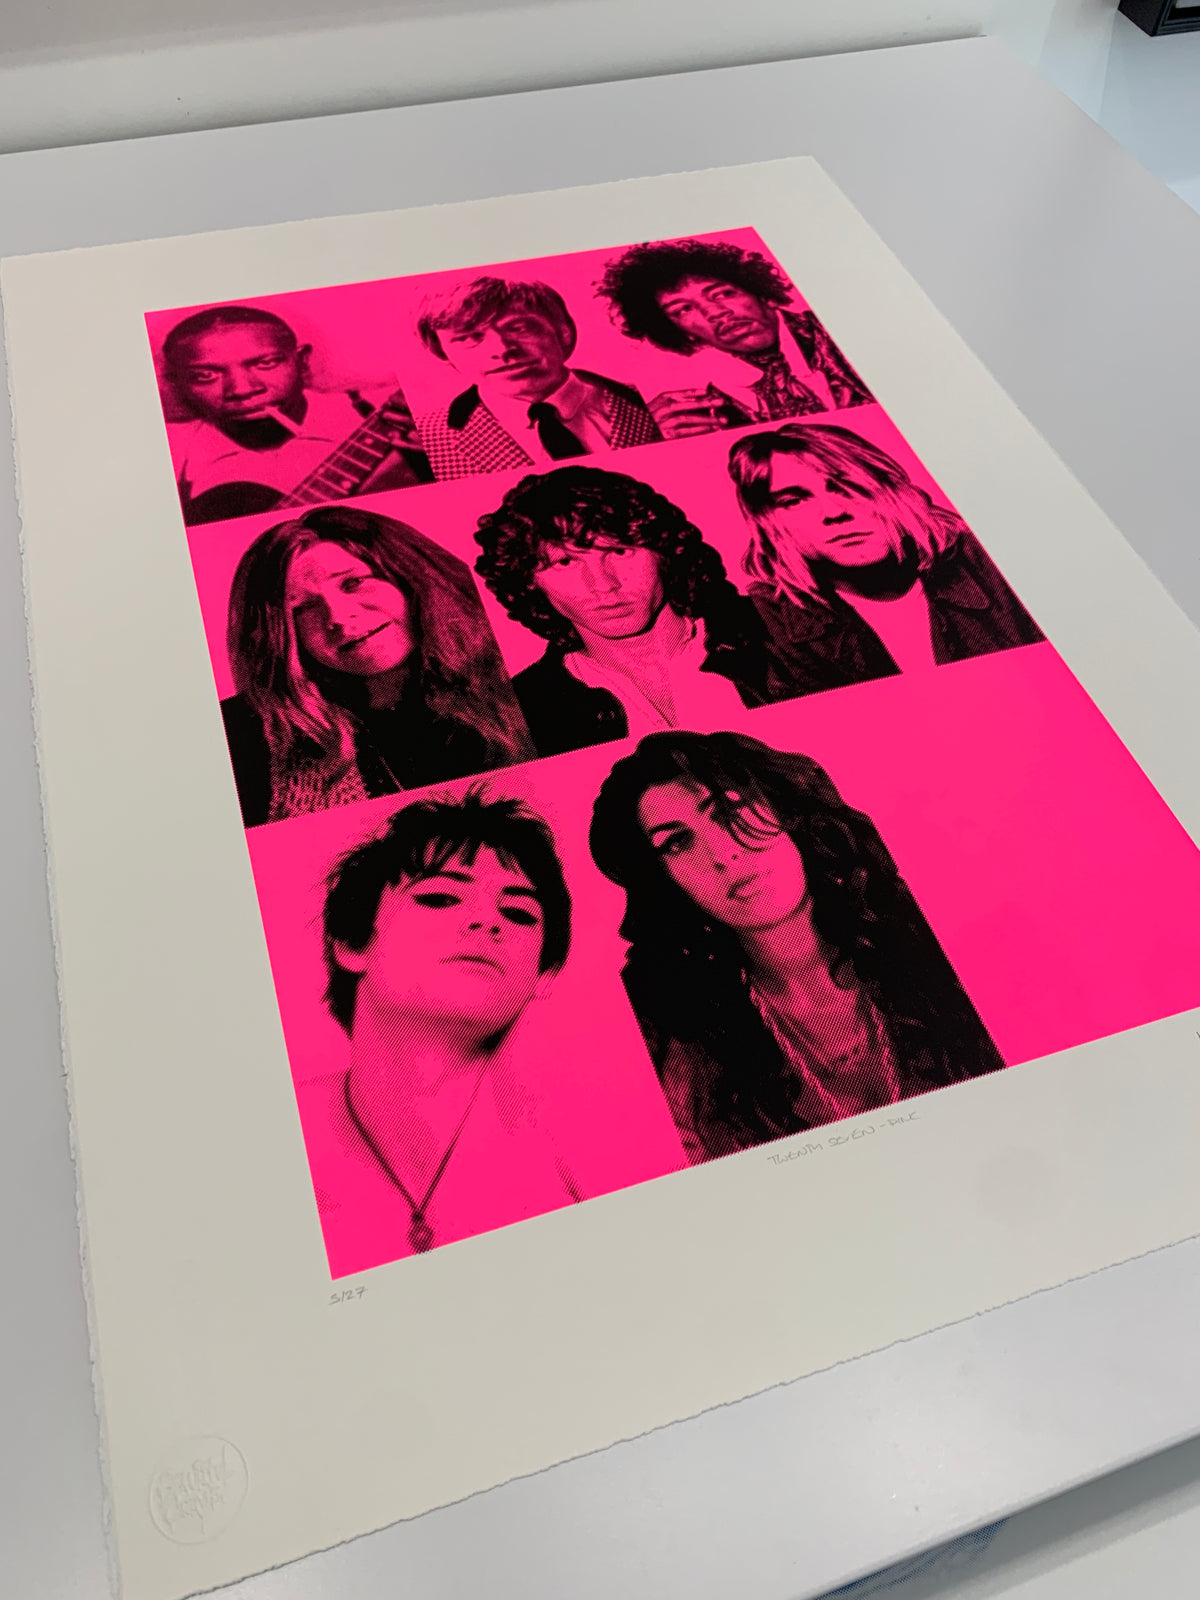 27 Club (Black and Pink)